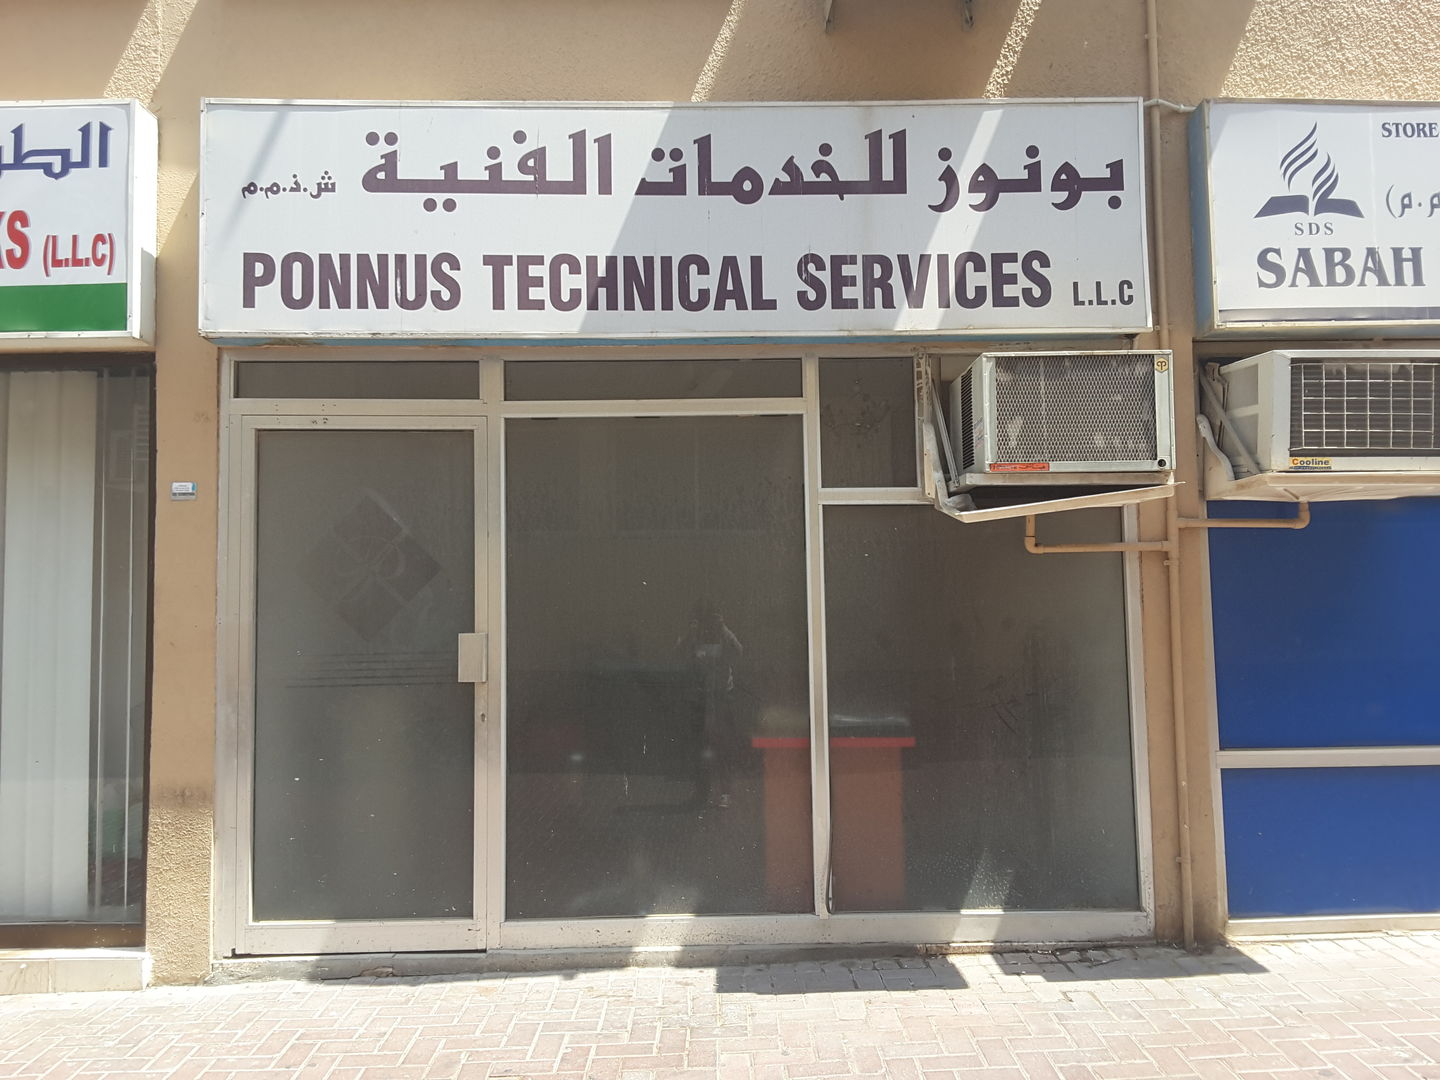 HiDubai-business-ponnus-technical-services-home-handyman-maintenance-services-al-fahidi-al-souq-al-kabeer-dubai-2